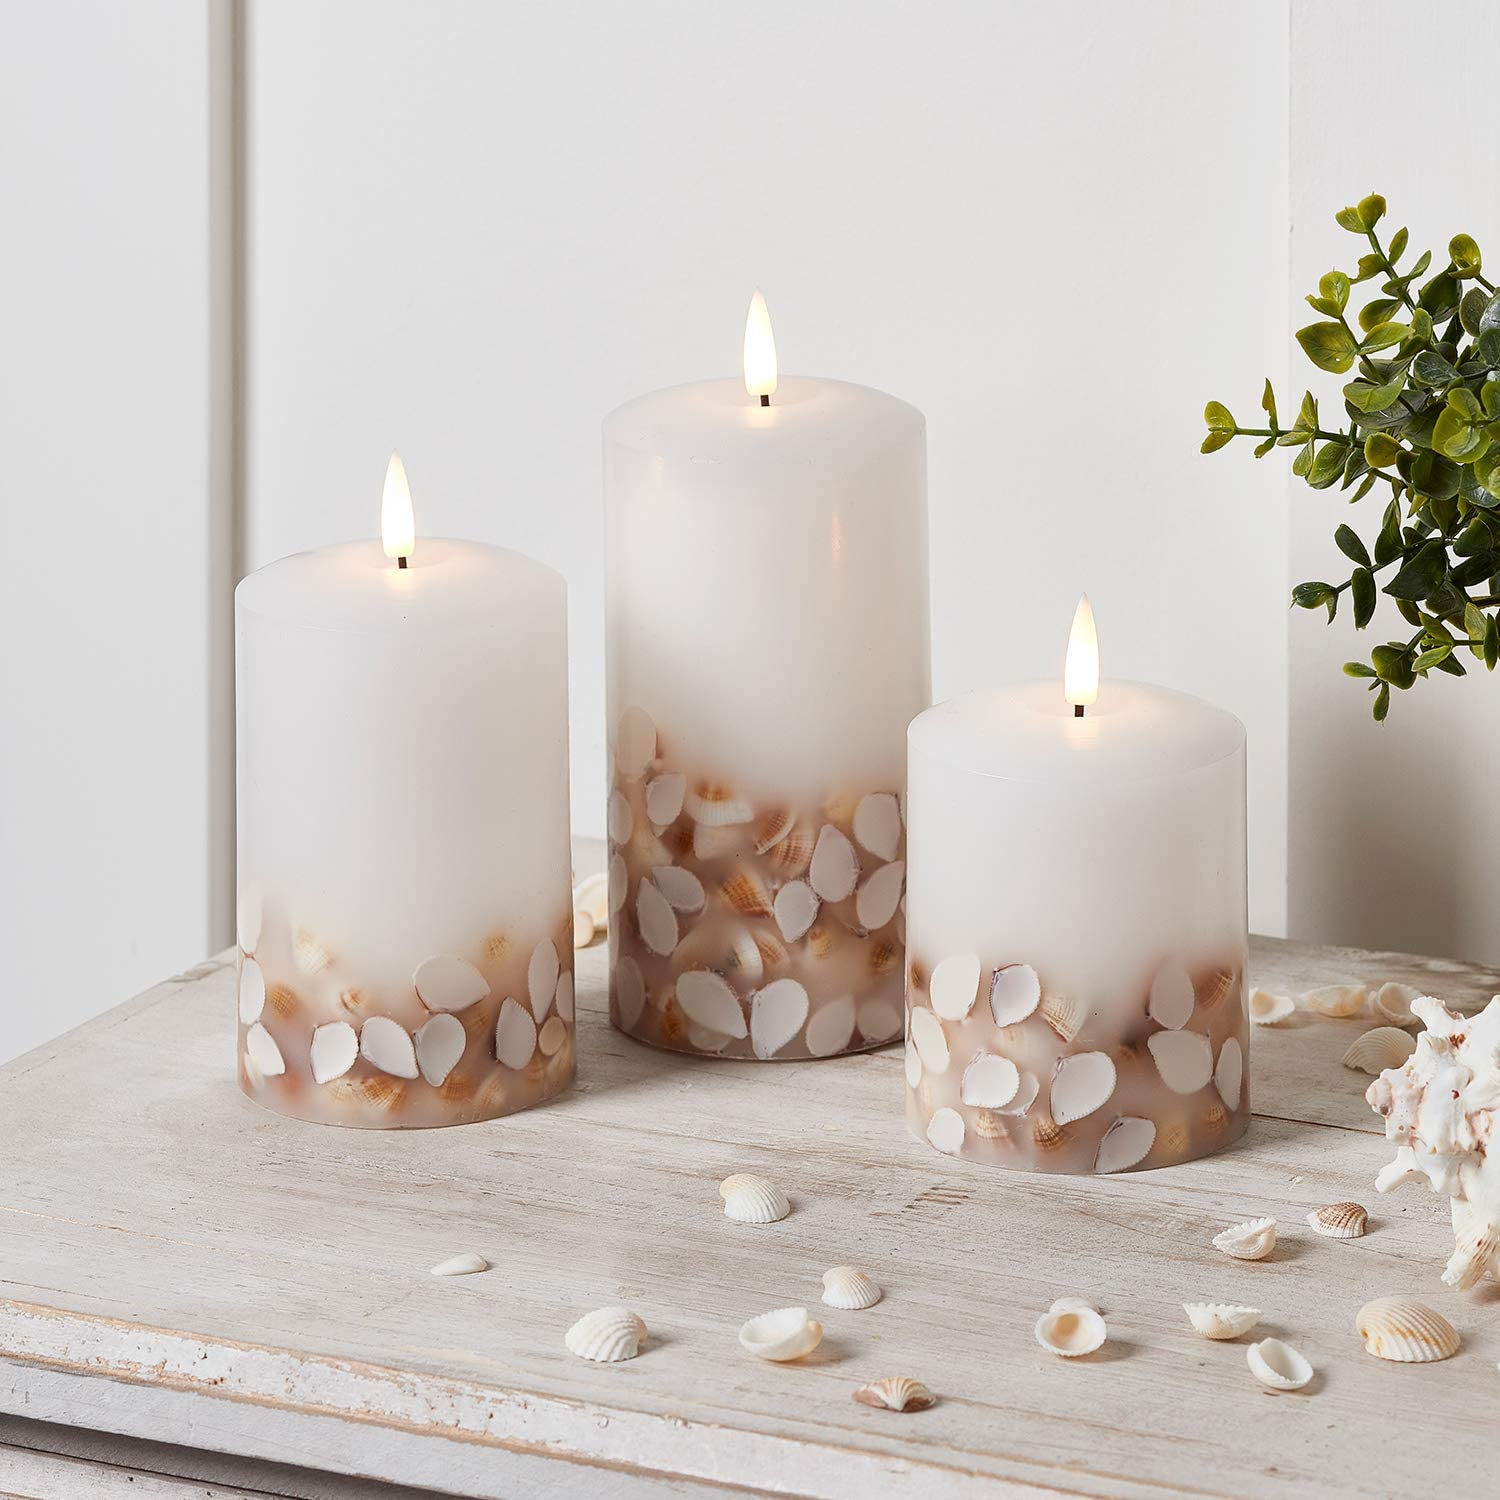 Lights4fun, Inc. Set of 3 TruGlow Seashell Ivory Wax Flameless LED Battery Operated Pillar Candles with Remote Control